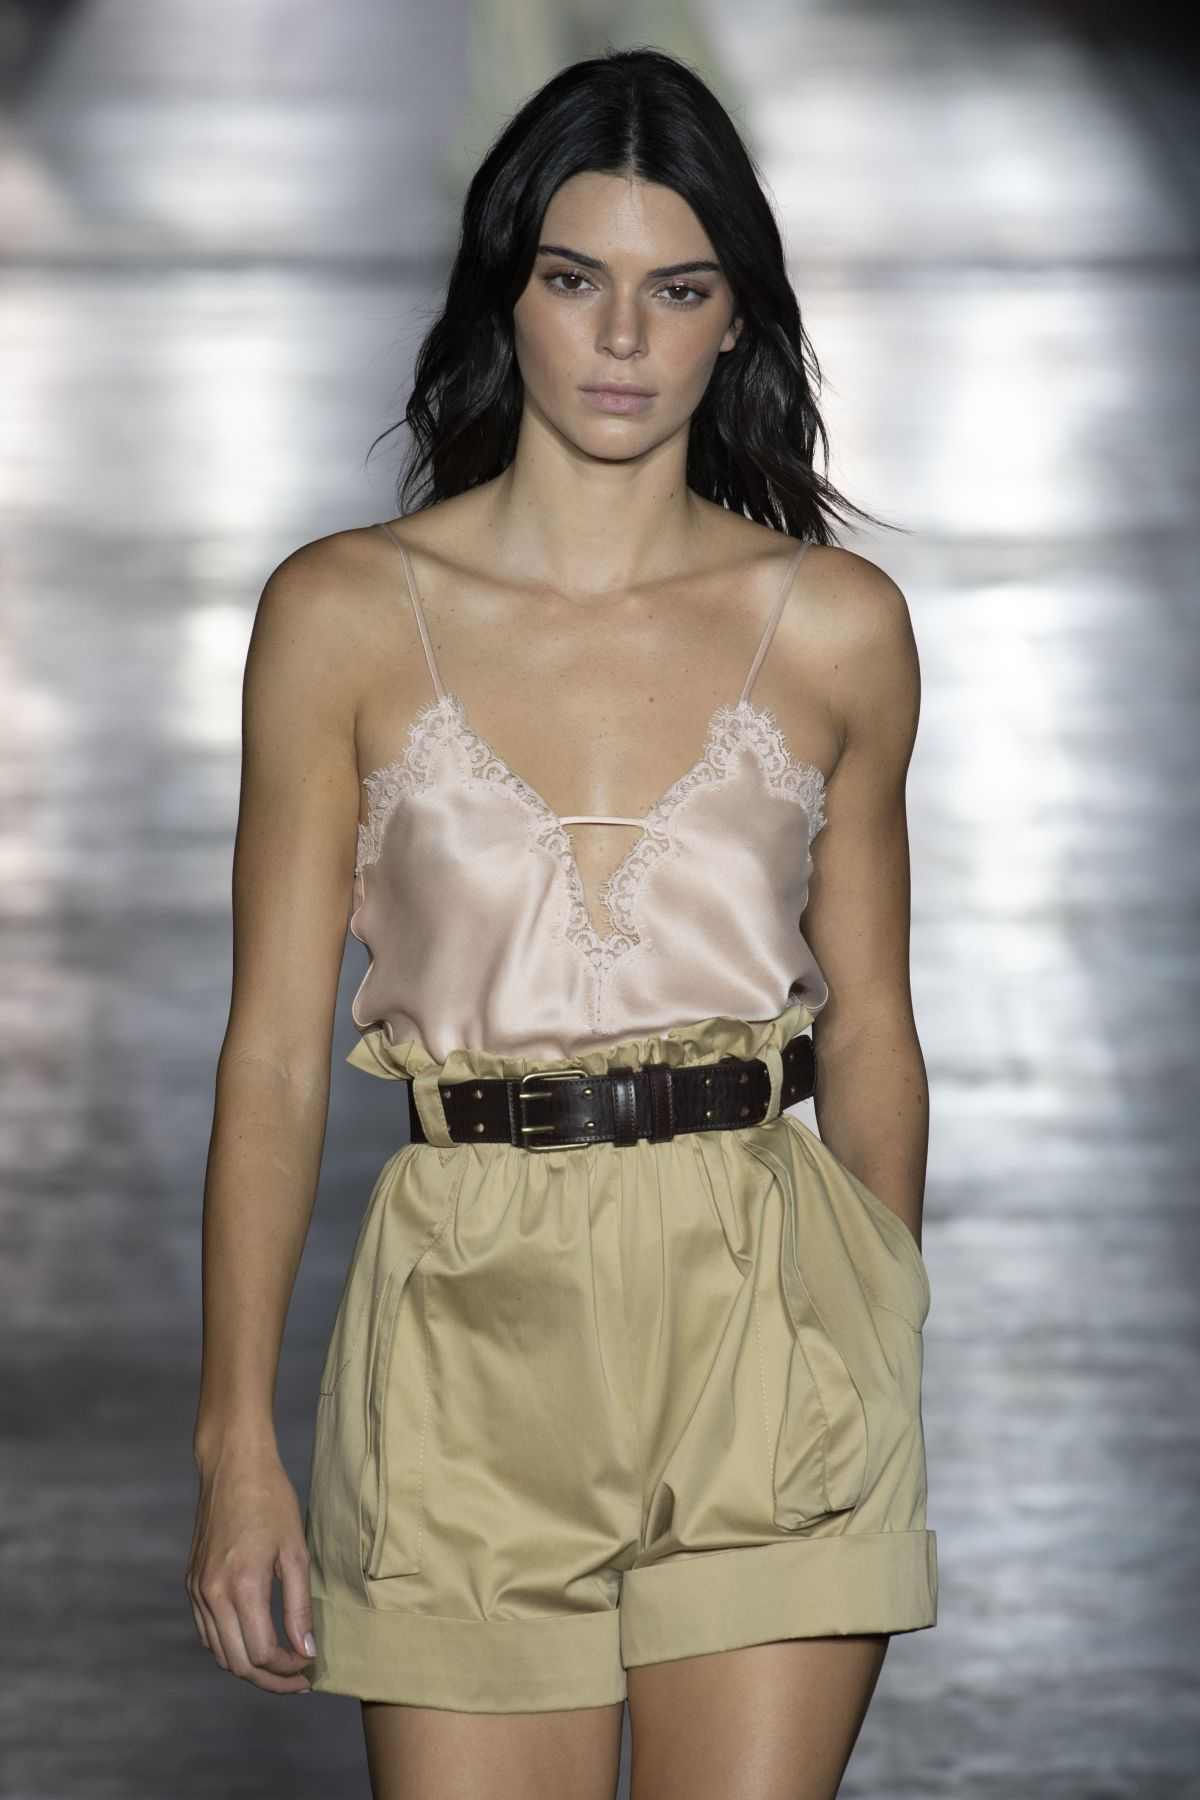 KENDALL JENNER at Alberta Ferretti Runway Shoe at Milan